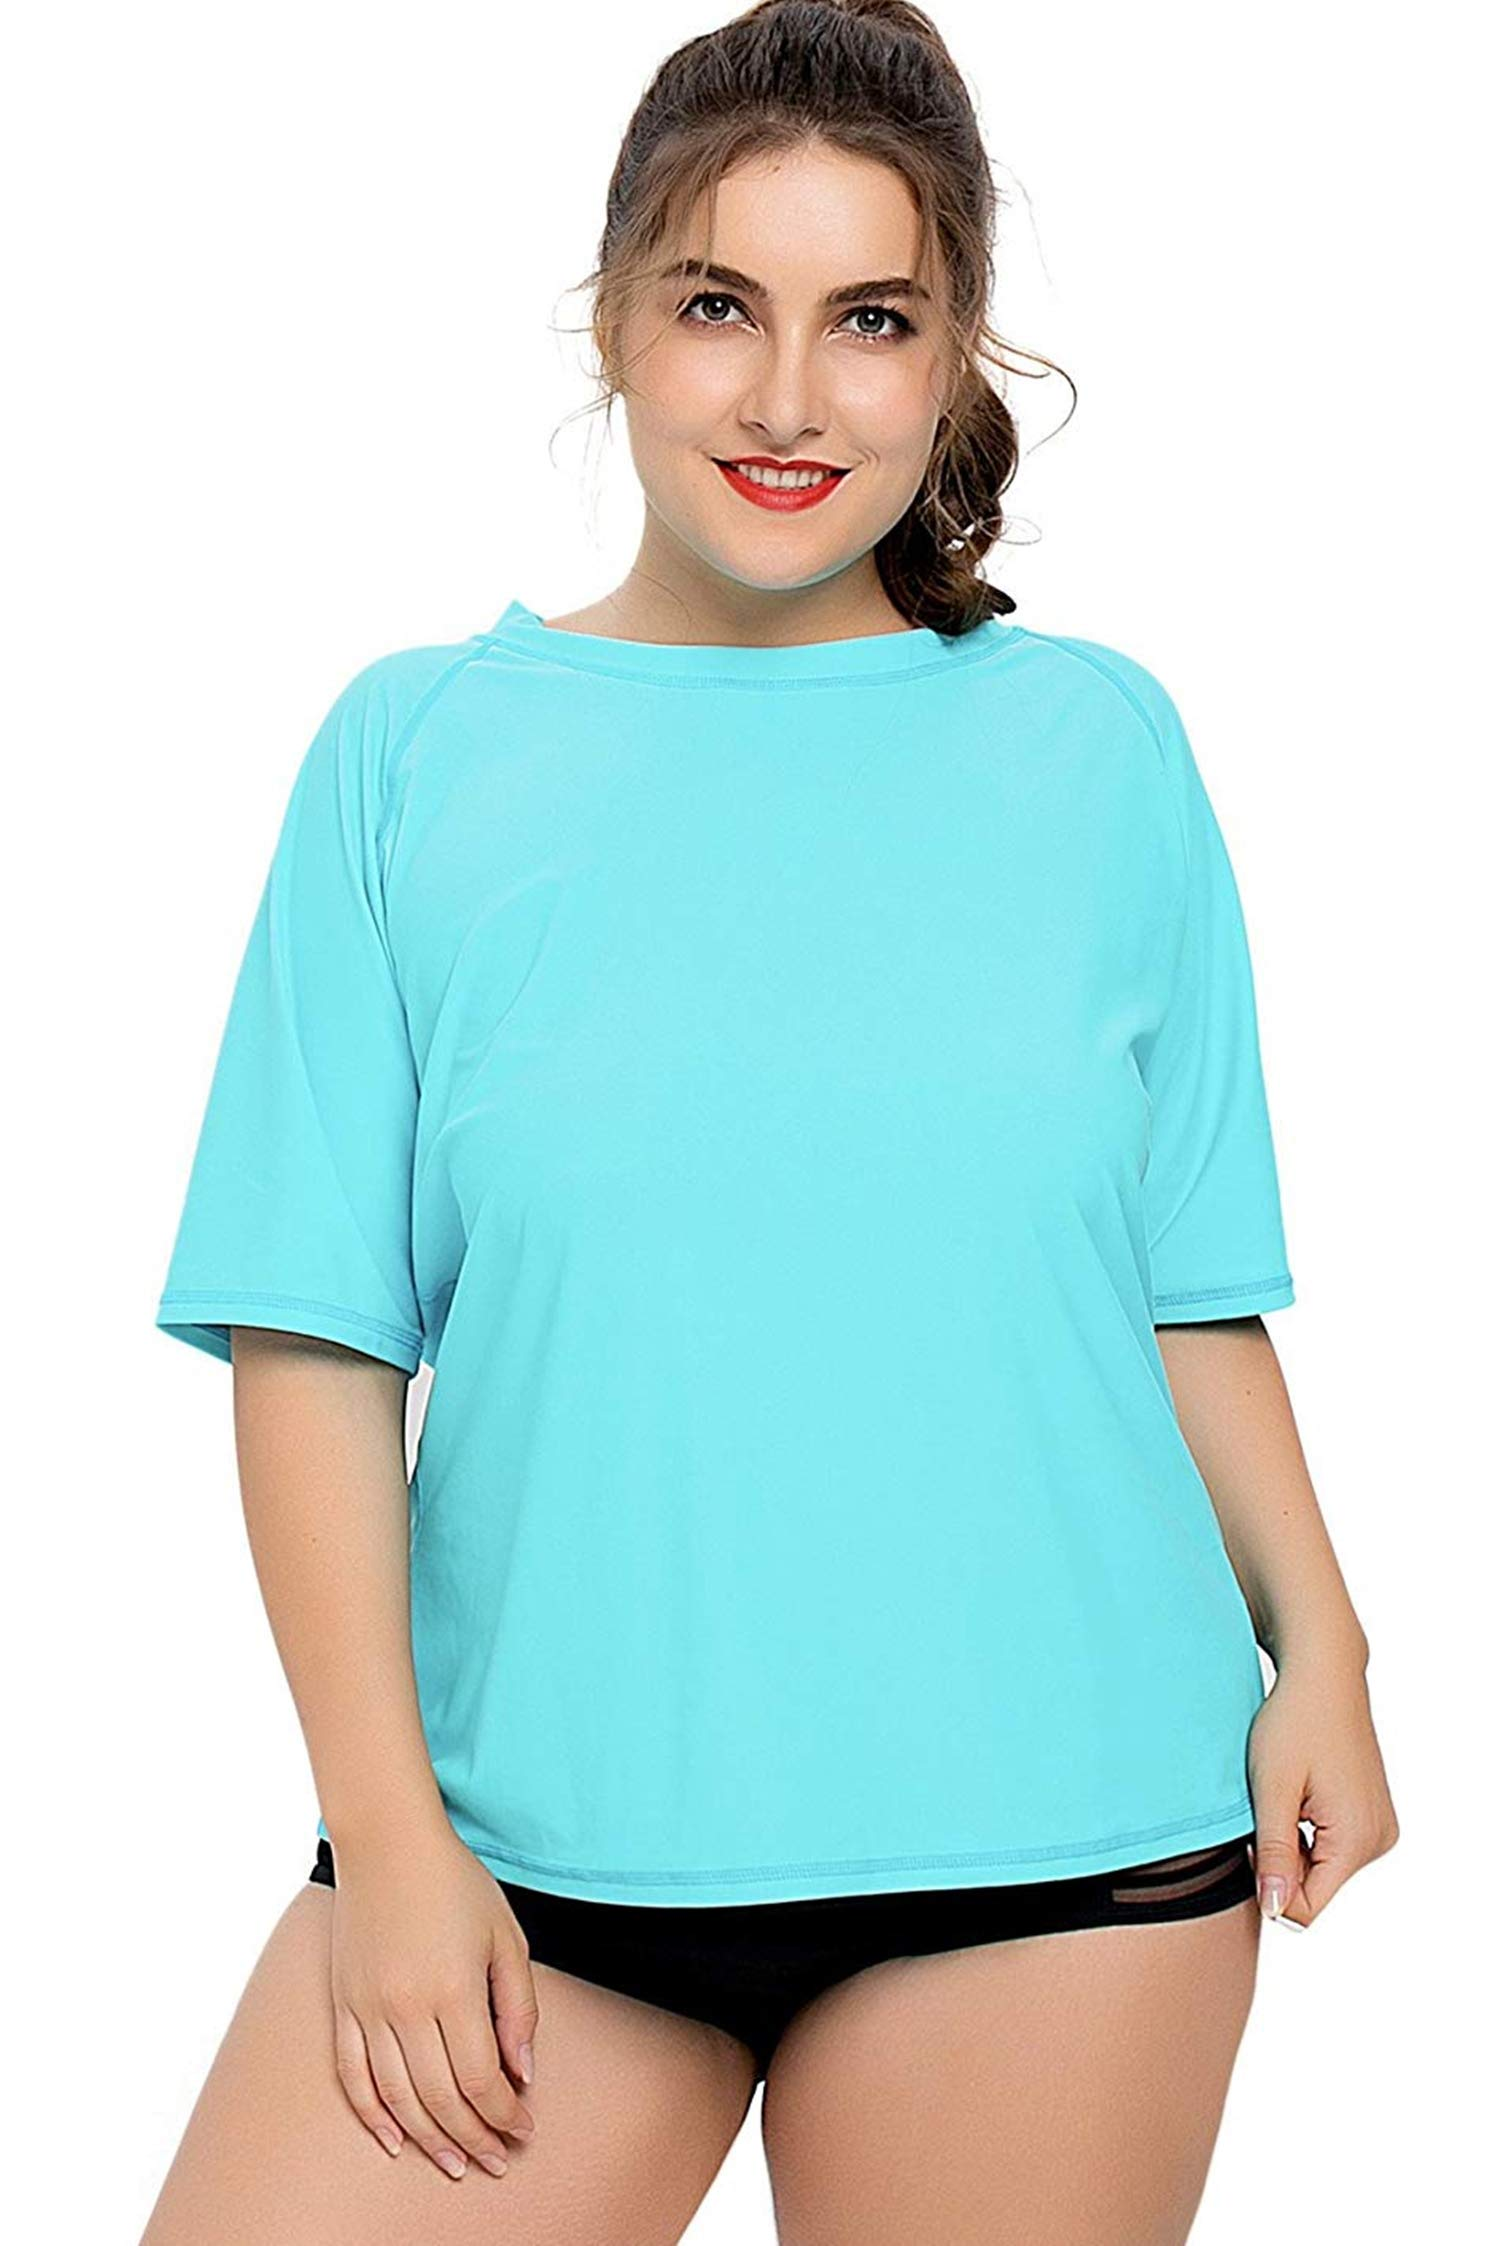 ATTRACO Womens Plus Size Rash Guard Shirts Short Sleeve Solid Rashguards 1X Aqua